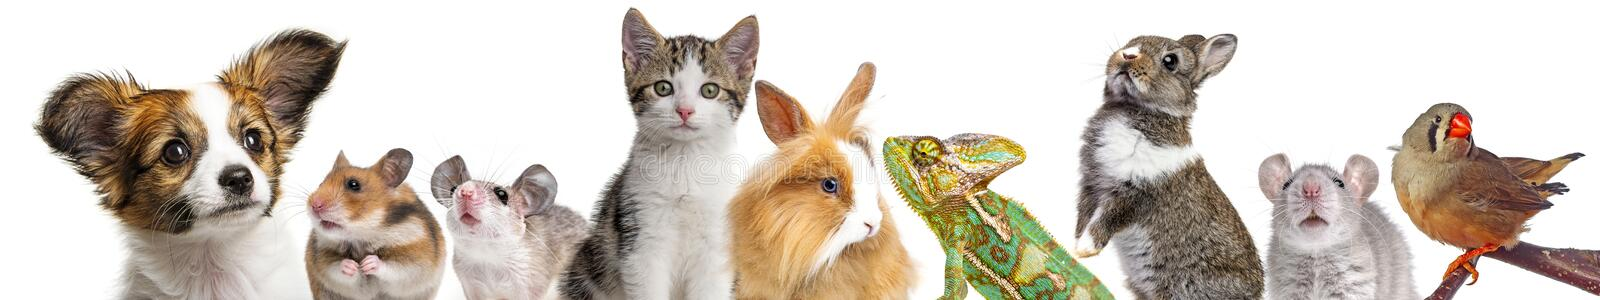 Cute animals royalty free stock photography